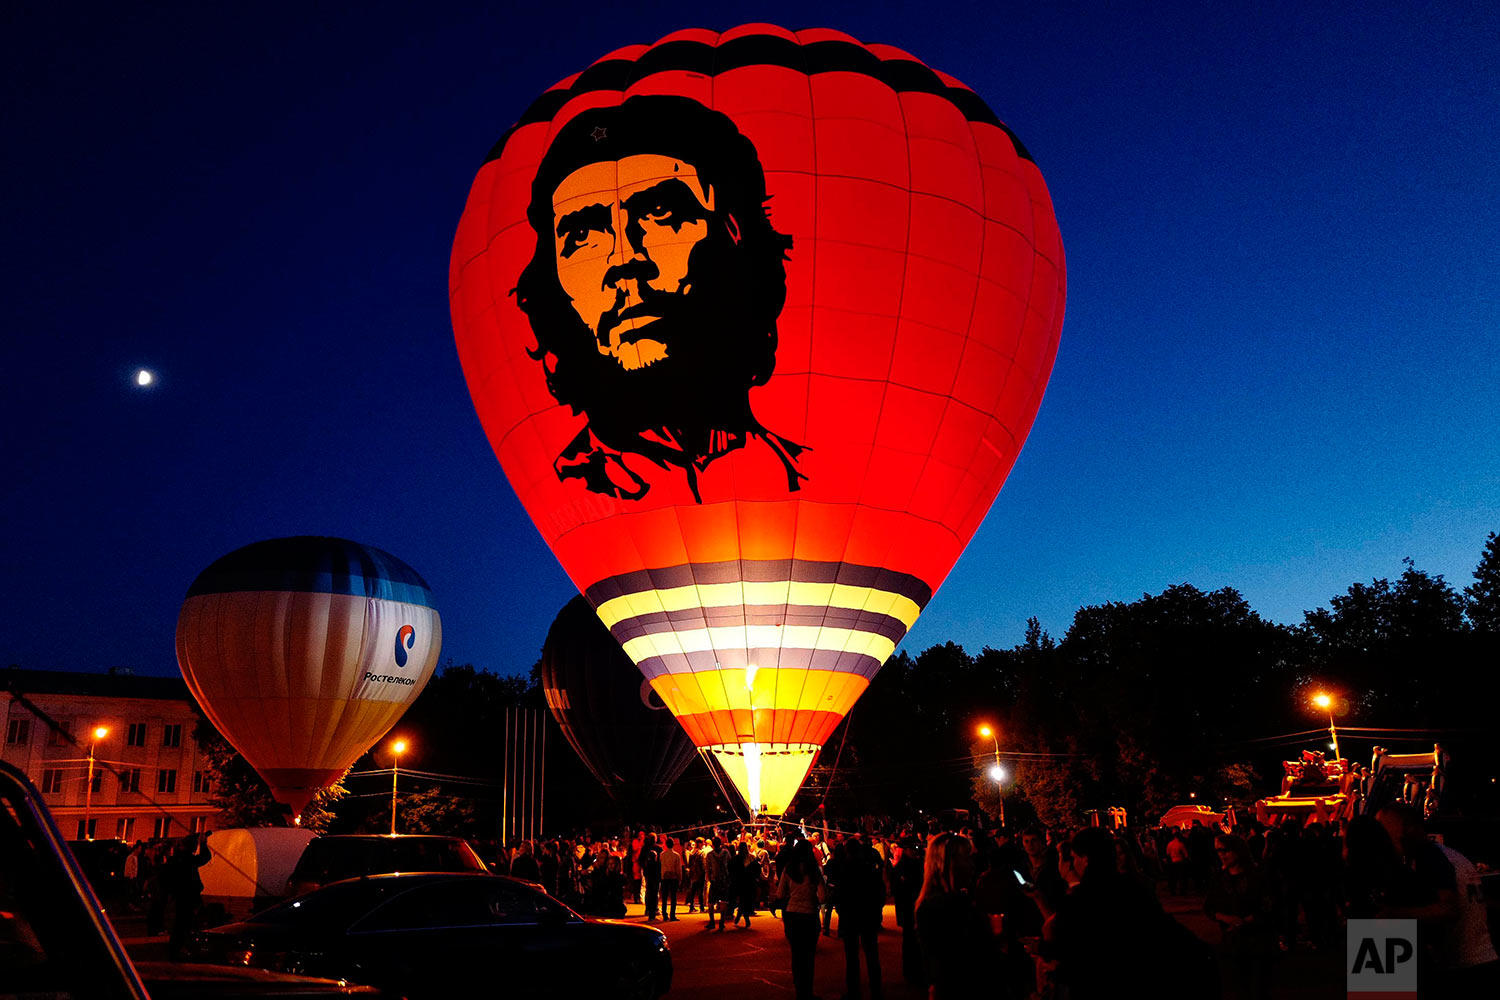 In this photo taken on Monday, June 13, 2016, a hot air balloon with the the image of Argentine revolutionary Che Guevara printed on it's side prepares to lift off during a ballooning festival in Velikiye Luki, Russia . (AP Photo/Maxim Marmur)